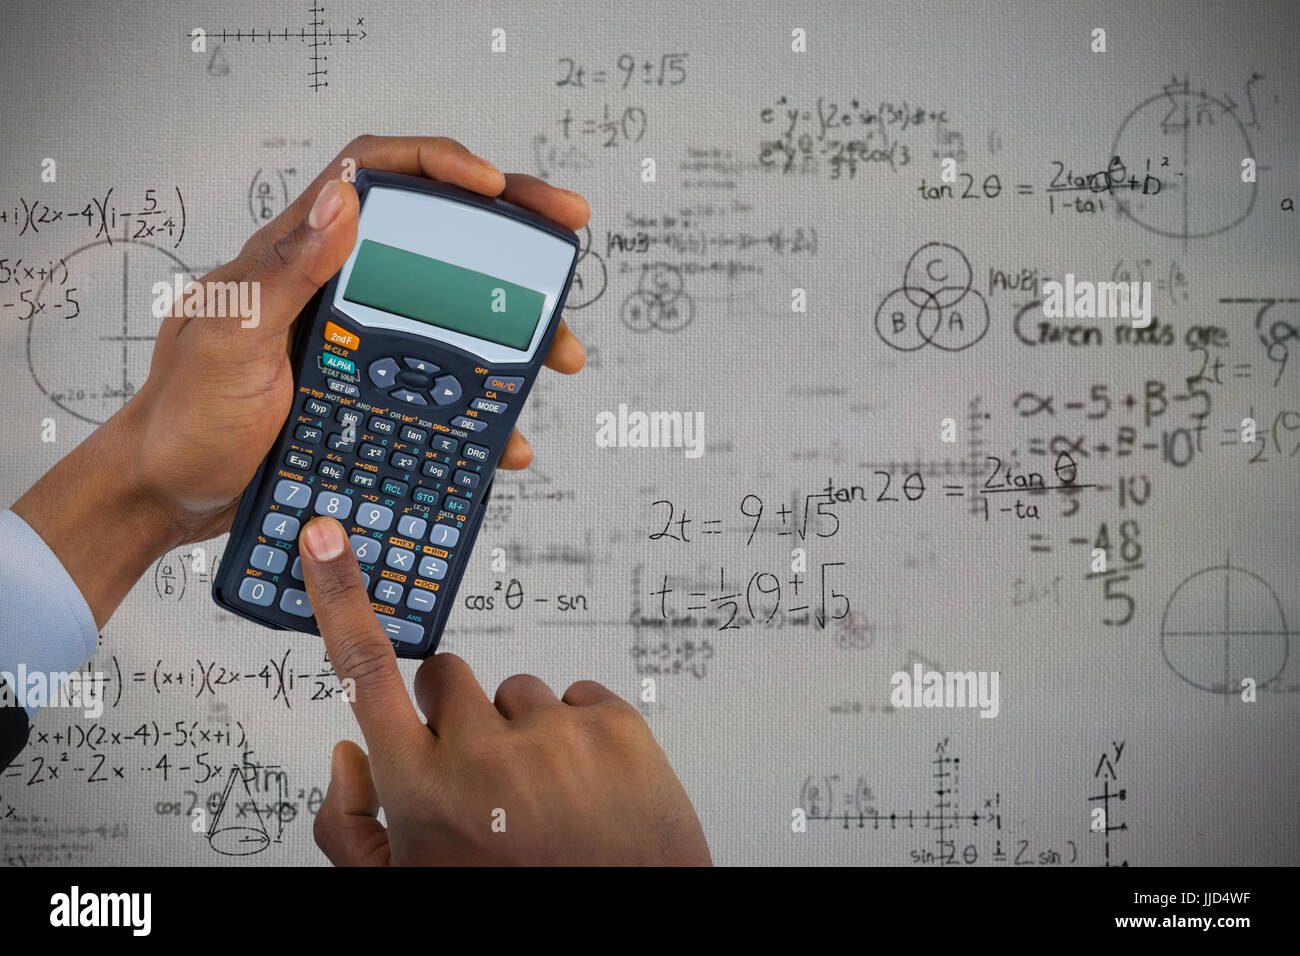 Hands Of Businessman Using Calculator Against Mathematical Problems